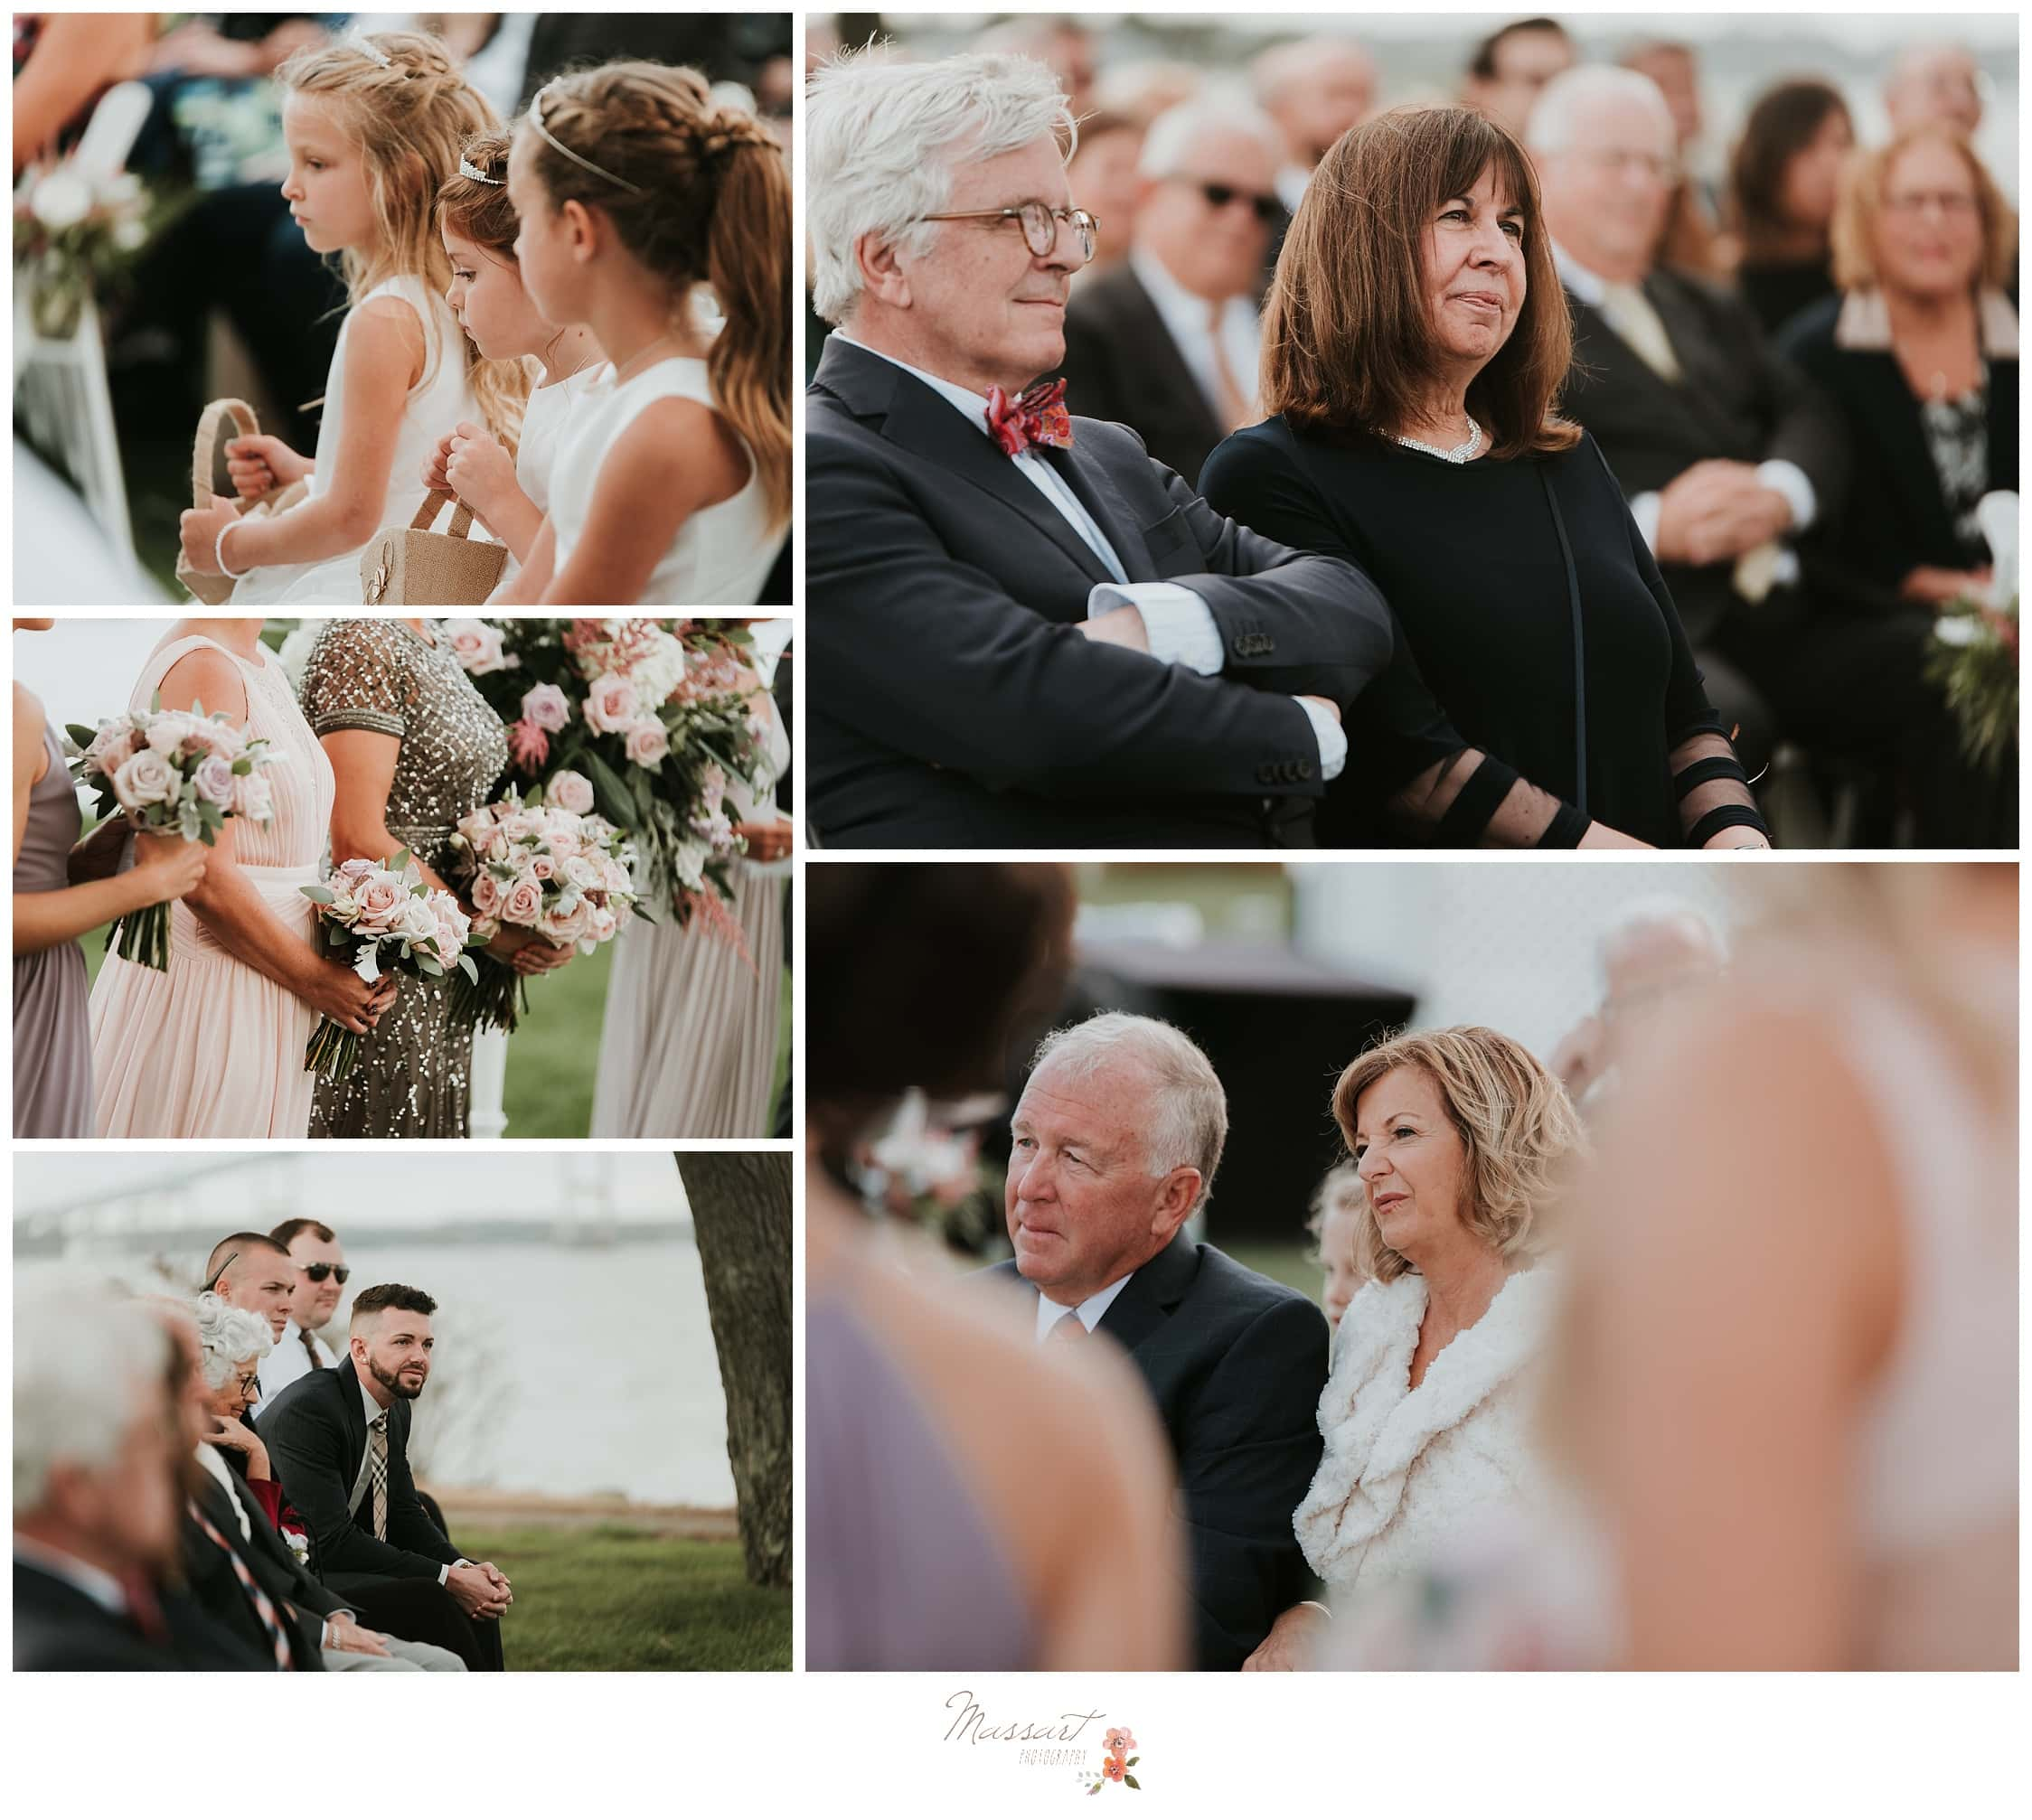 Portraits of the wedding guests during the ceremony photographed by Massart Photography RI